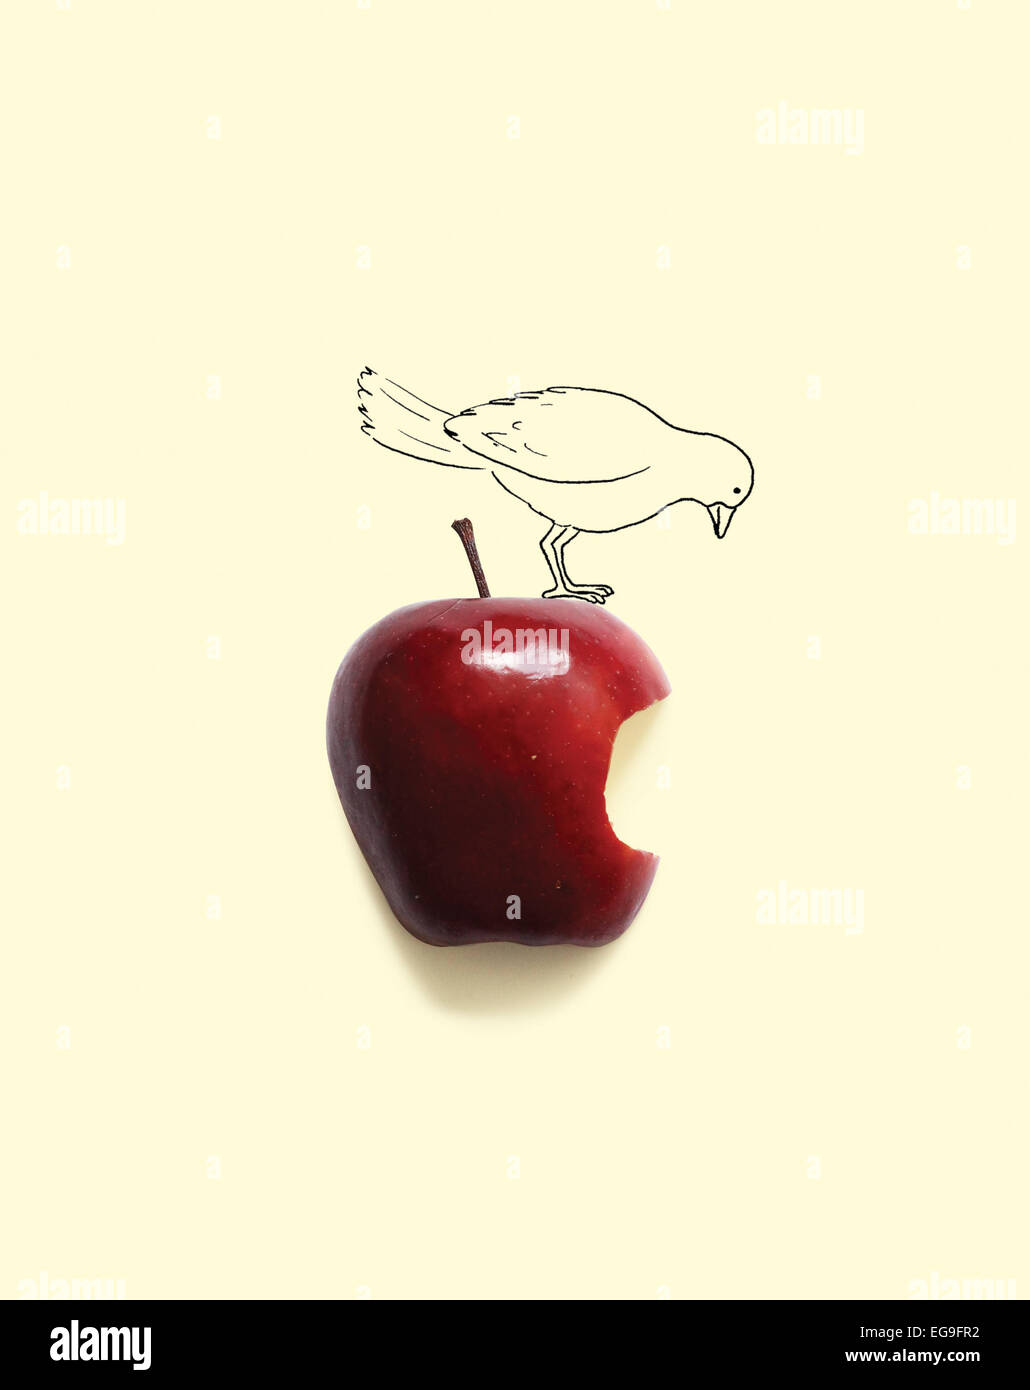 Conceptual bird on apple with a bite missing - Stock Image